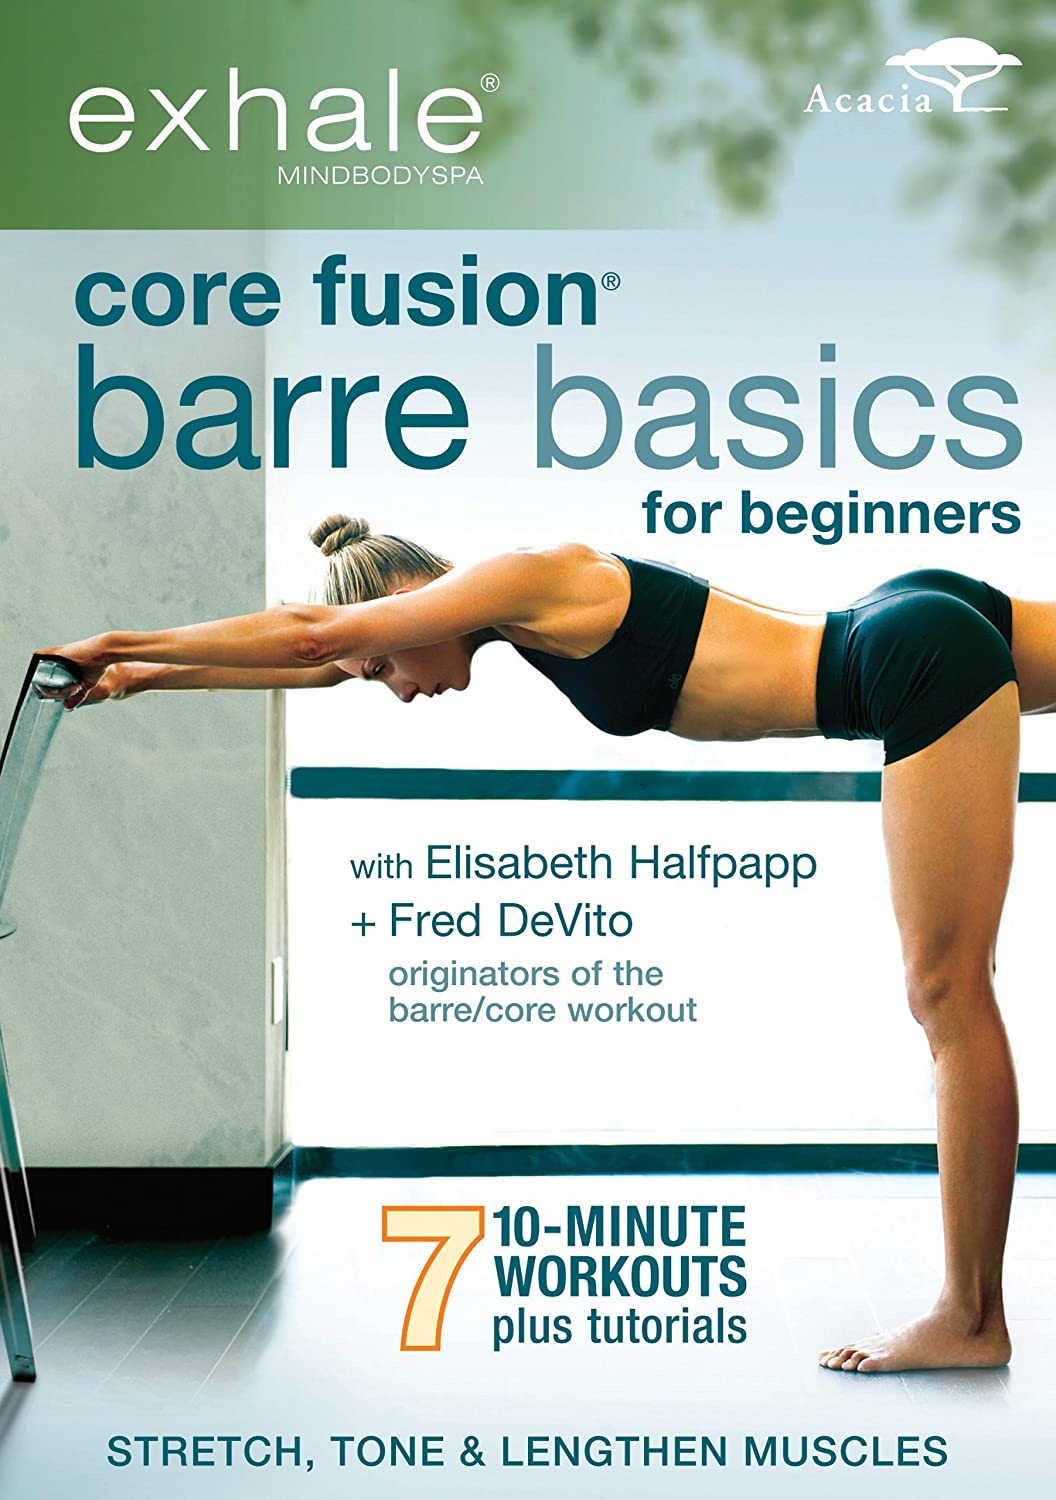 EXHALE: CORE FUSION BARRE BASICS FOR BEGINNERS